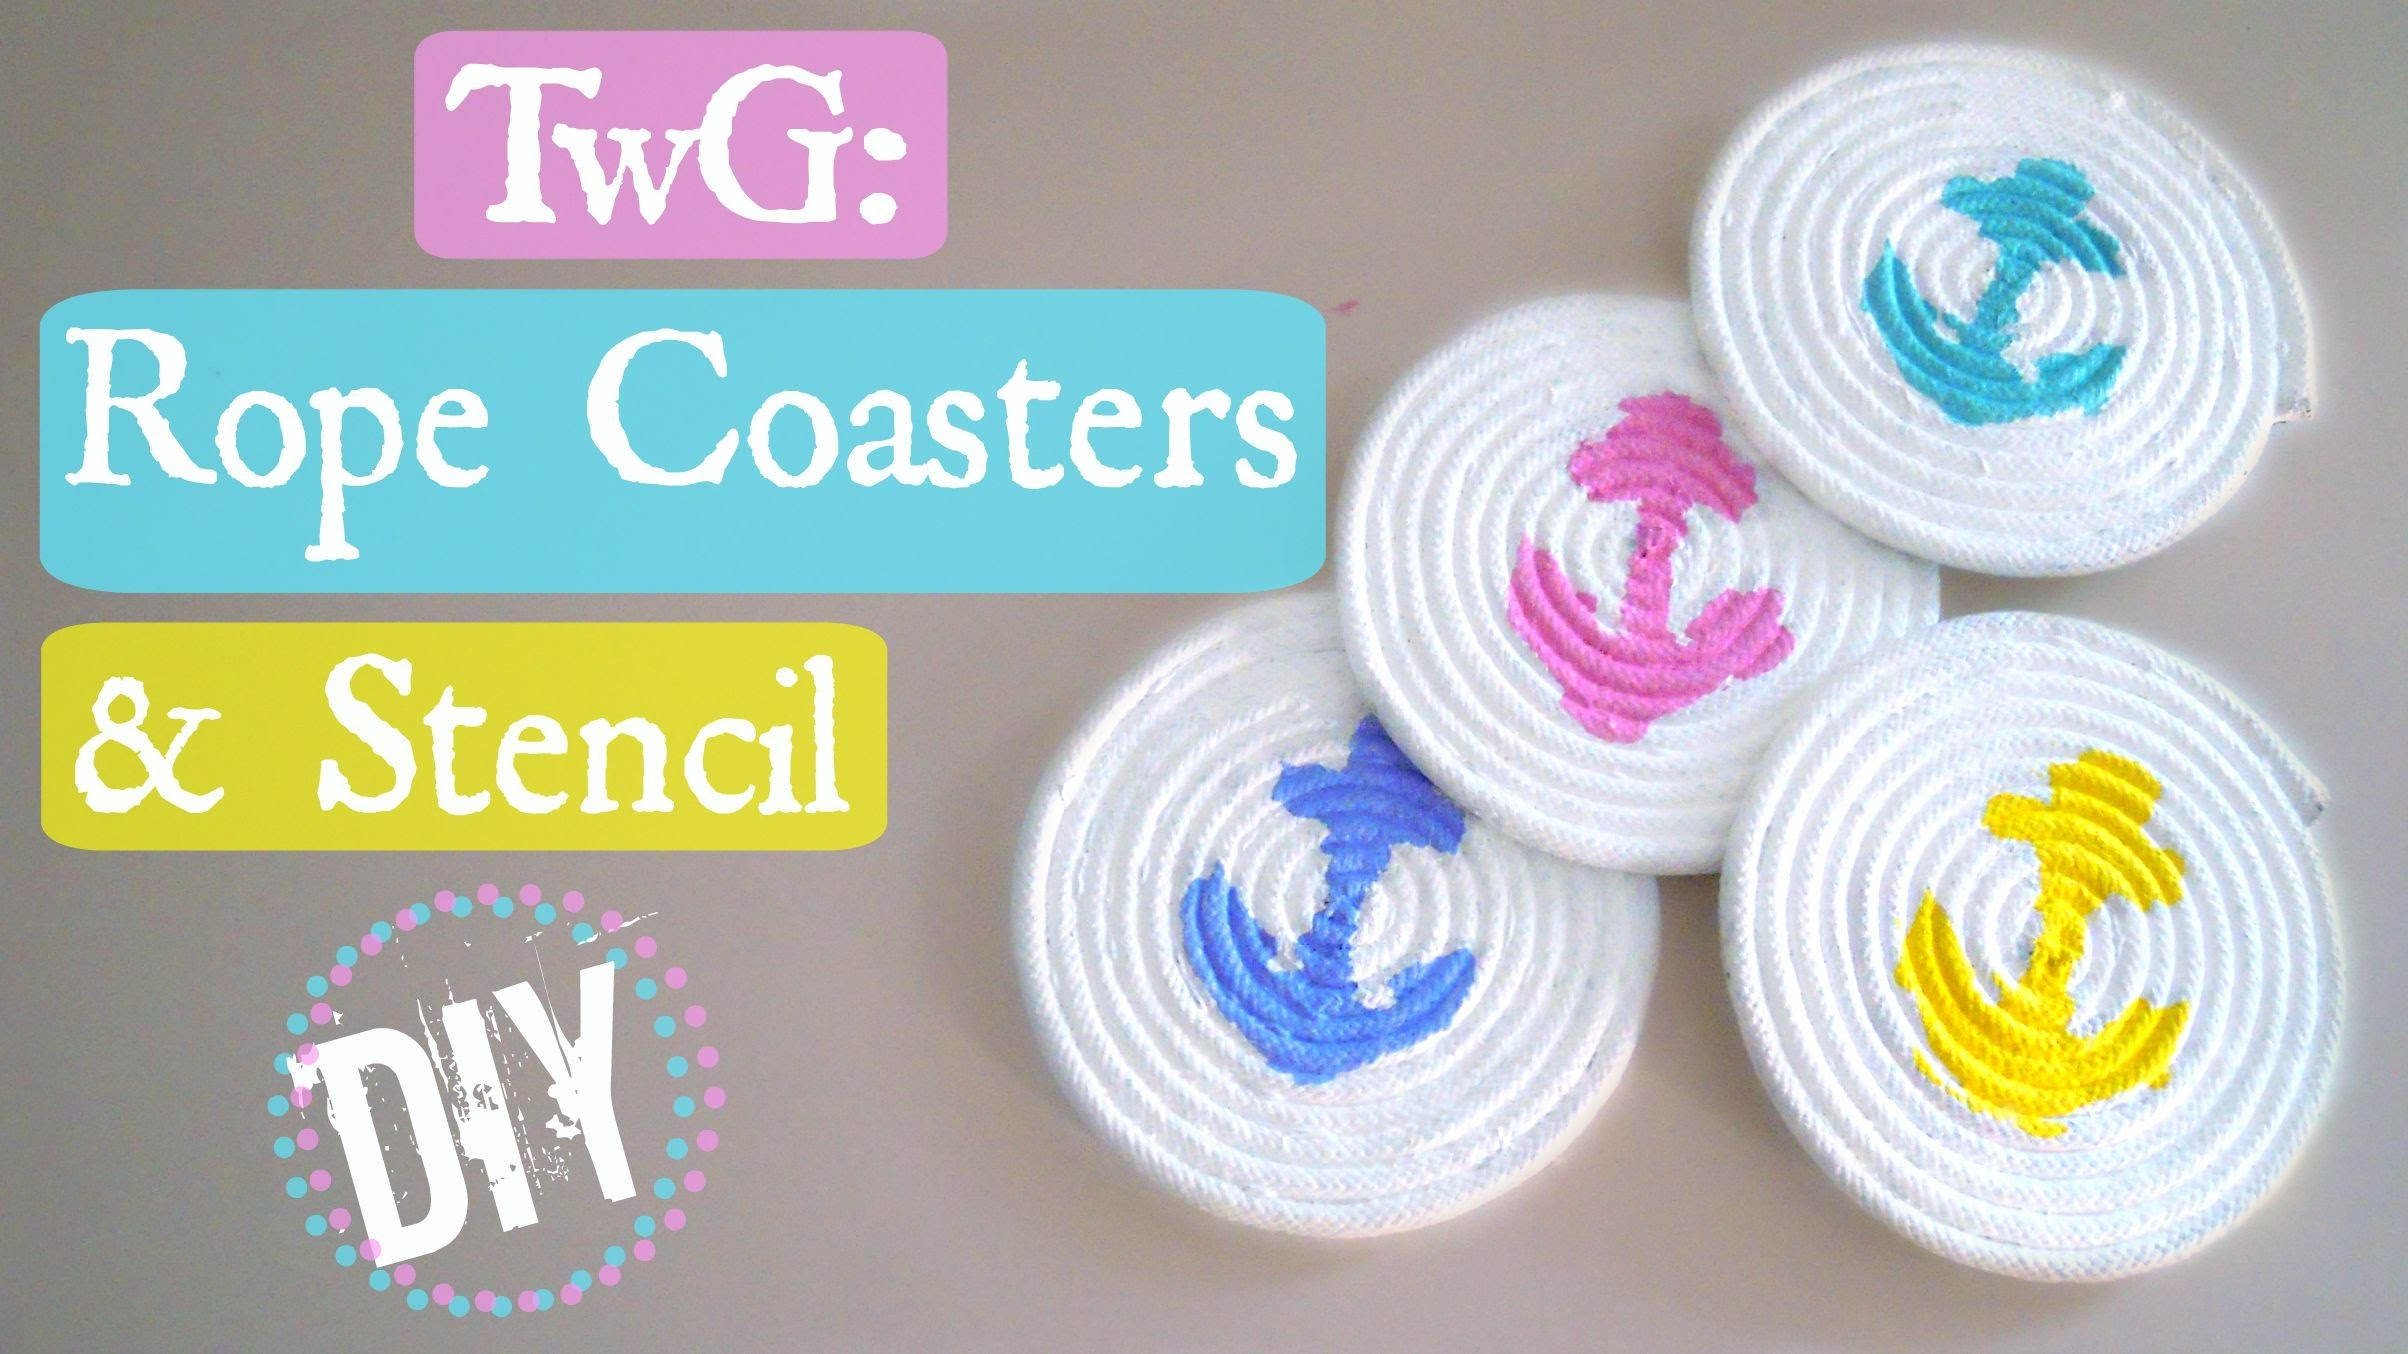 Traveling with a Glue Gun: DIY Rope Coasters with Stencil Design